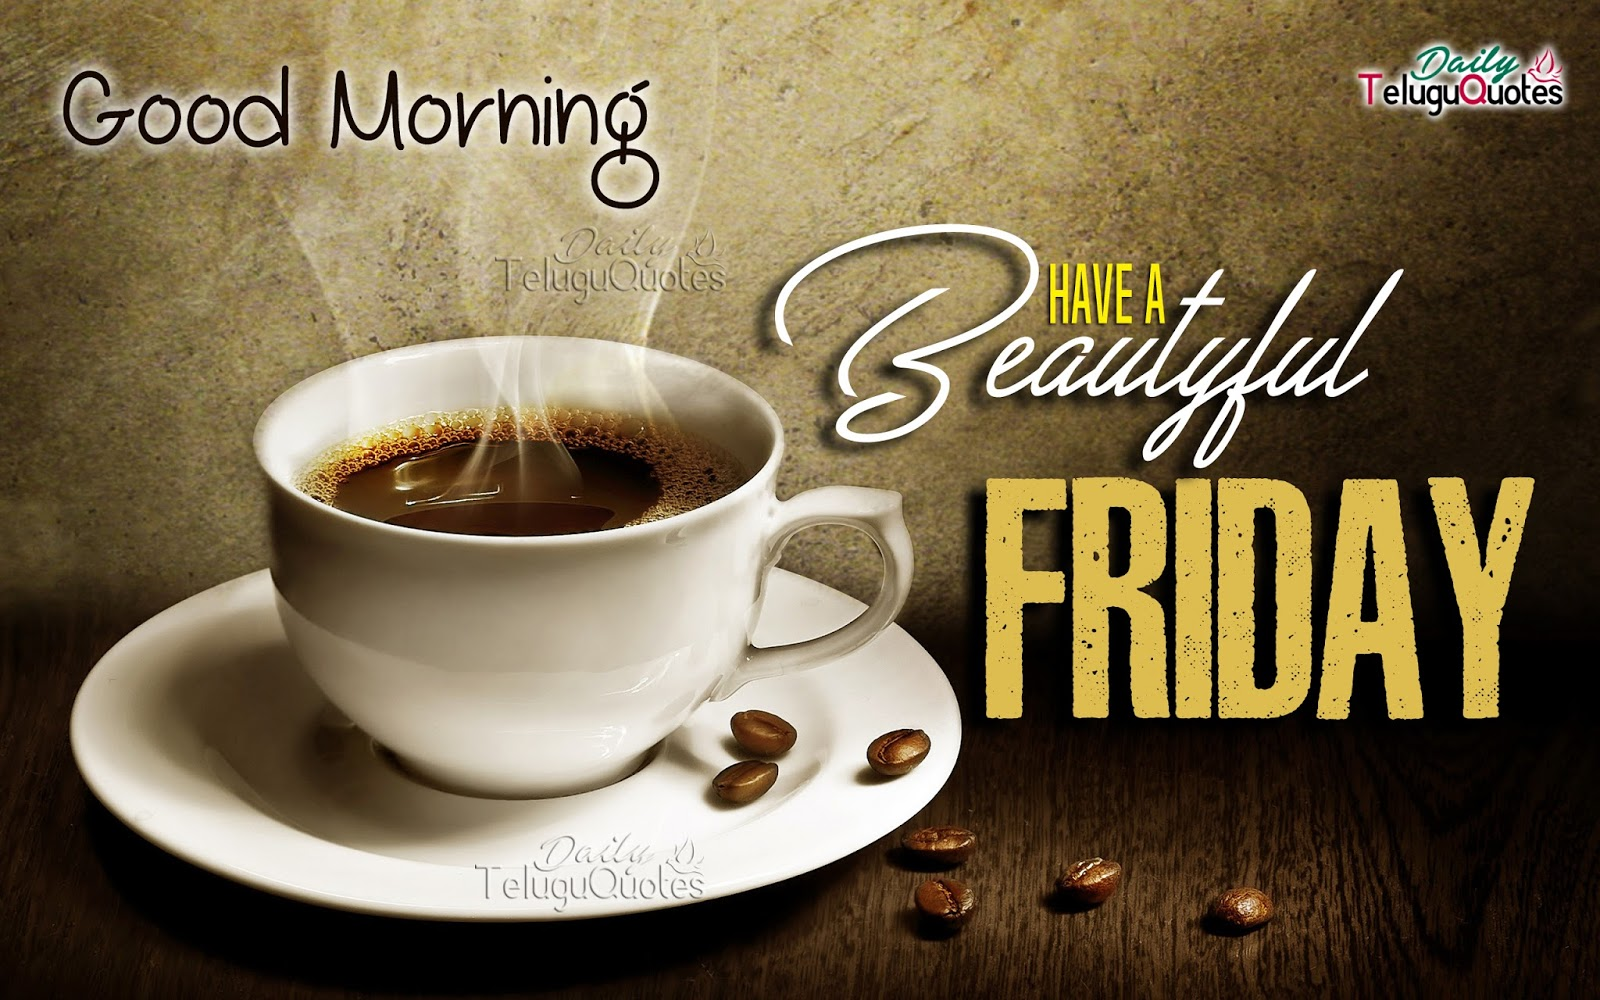 Happy Friday Good Morning Quotes And Sayings Hd Images